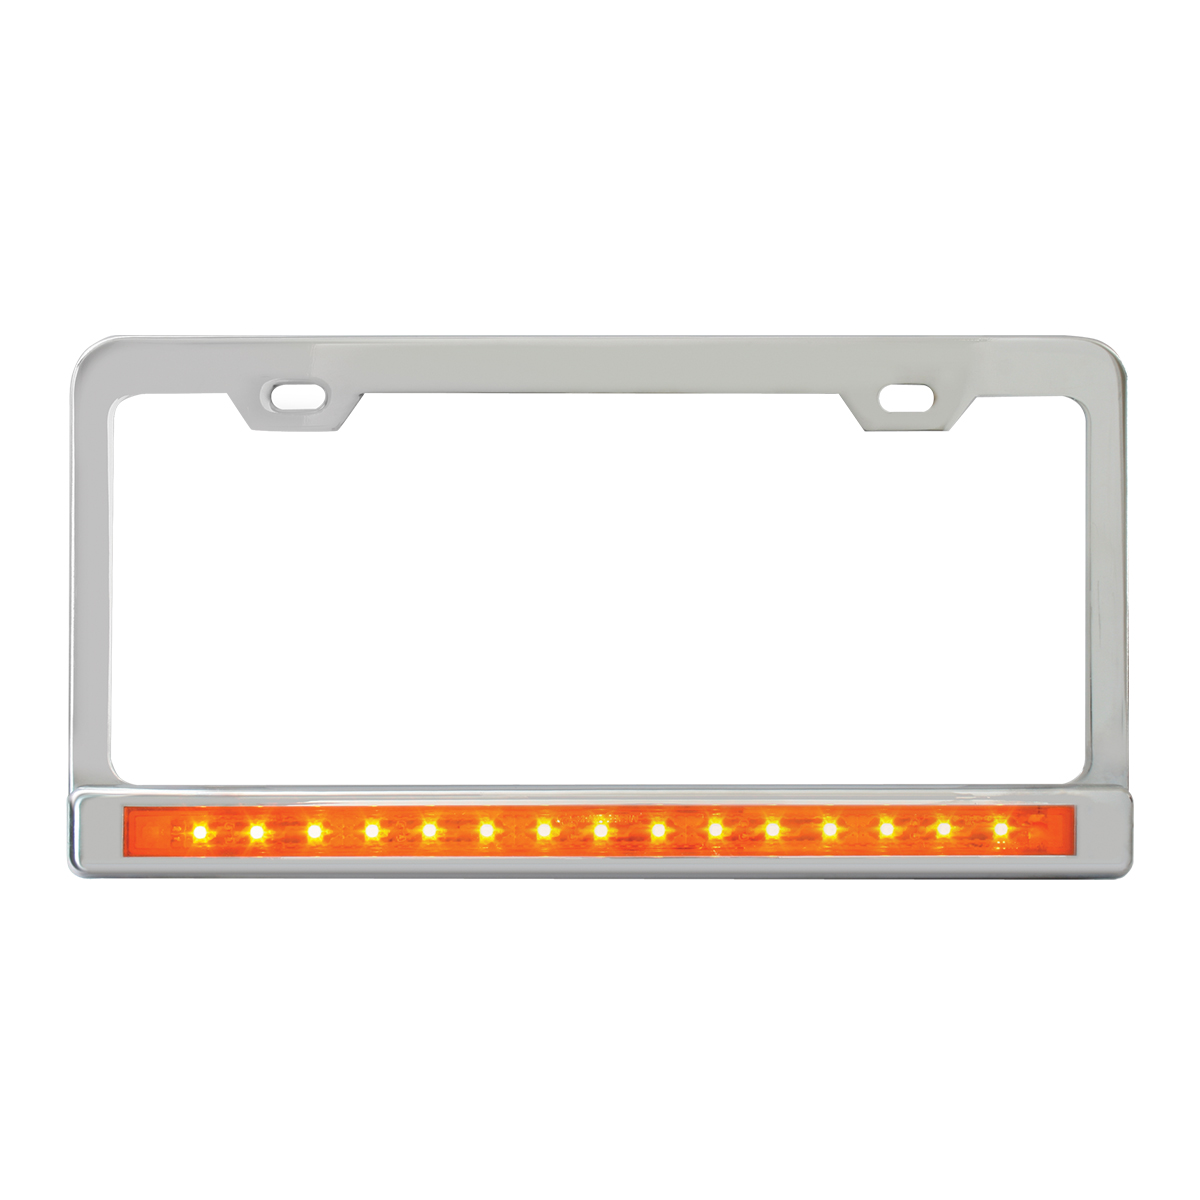 "Chrome Plated Steel 2 Holes License Plate Frame with 12"" LED Amber/Amber"